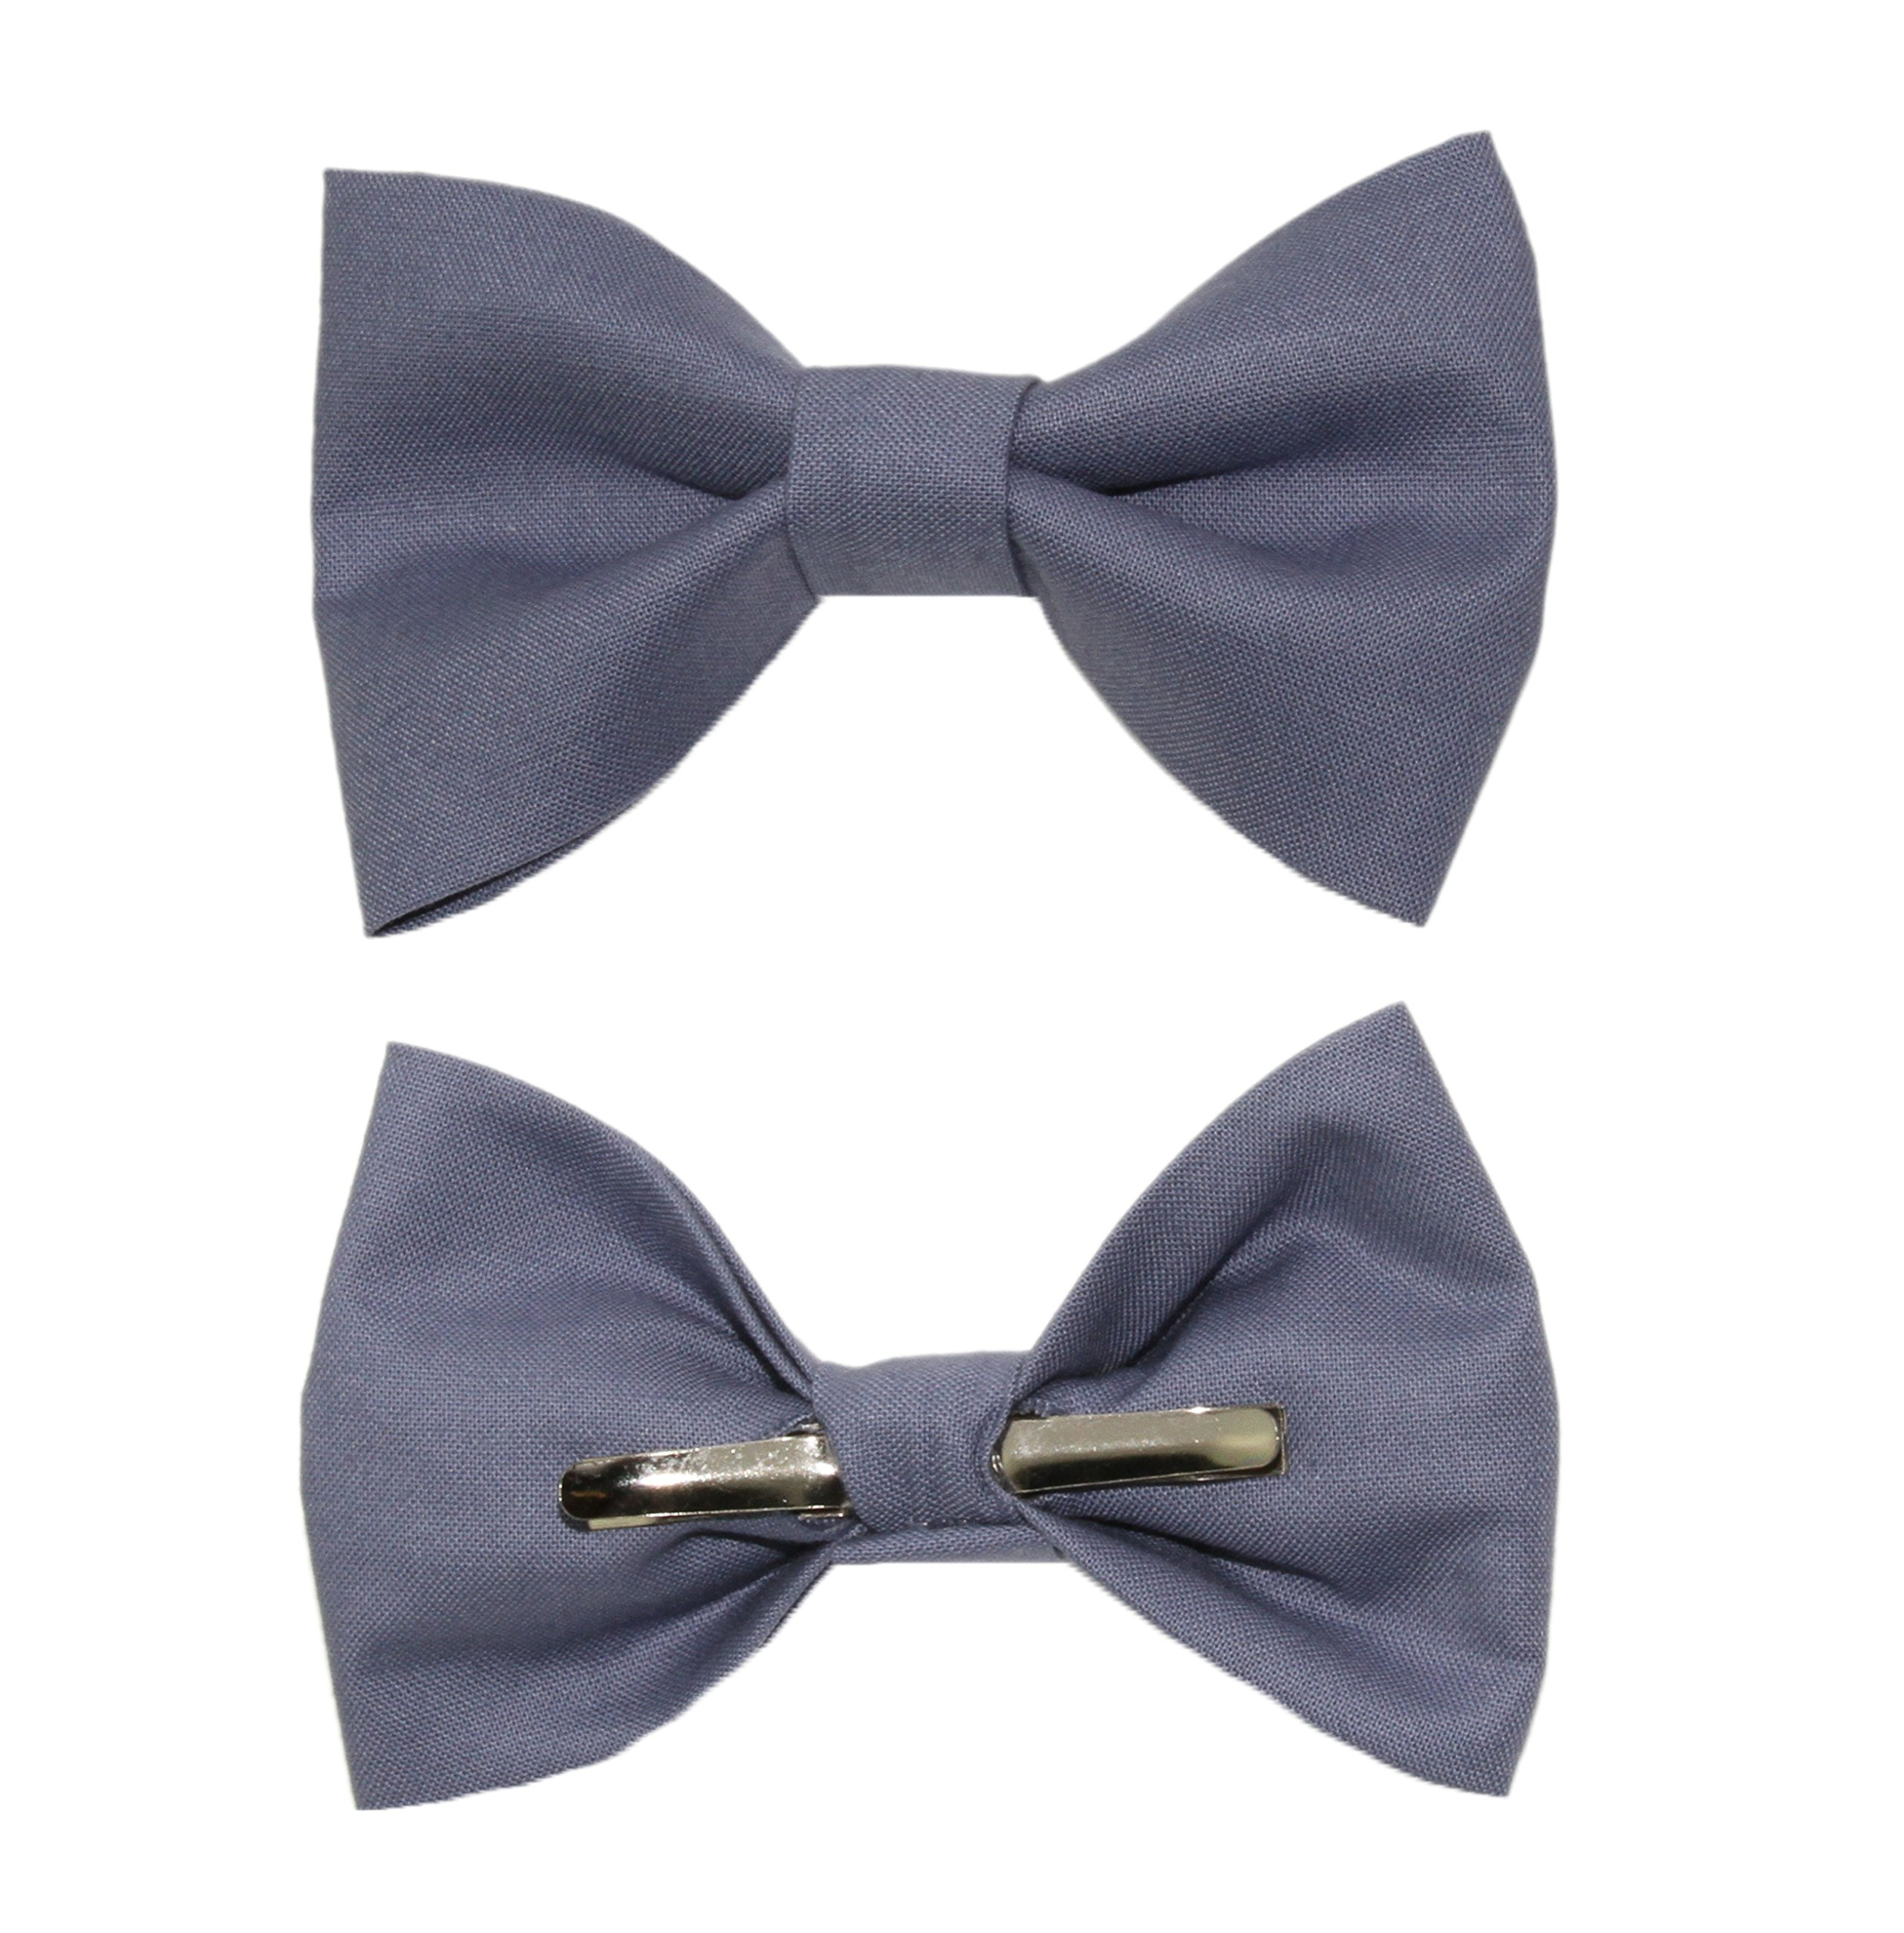 Boys Slate Blue Clip On Cotton Bow Tie Bowtie - Made in USA